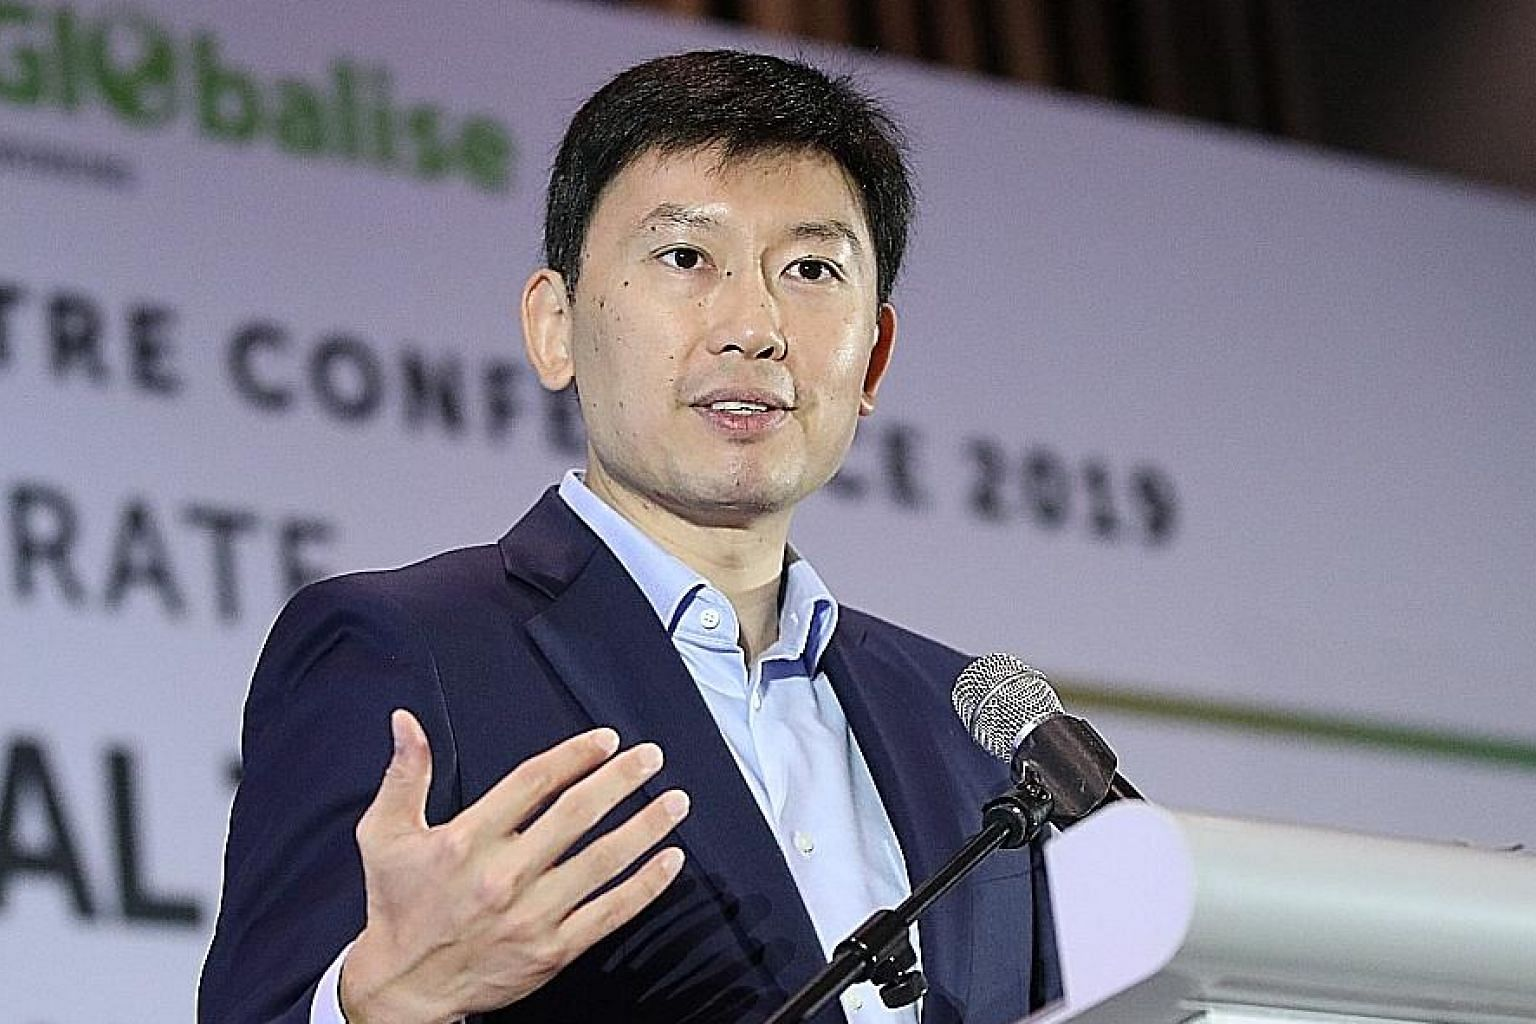 Senior Minister of State for Trade and Industry Chee Hong Tat acknowledged that the Government must be more accepting of ideas that are out of the norm and be nimble in adapting its rules.